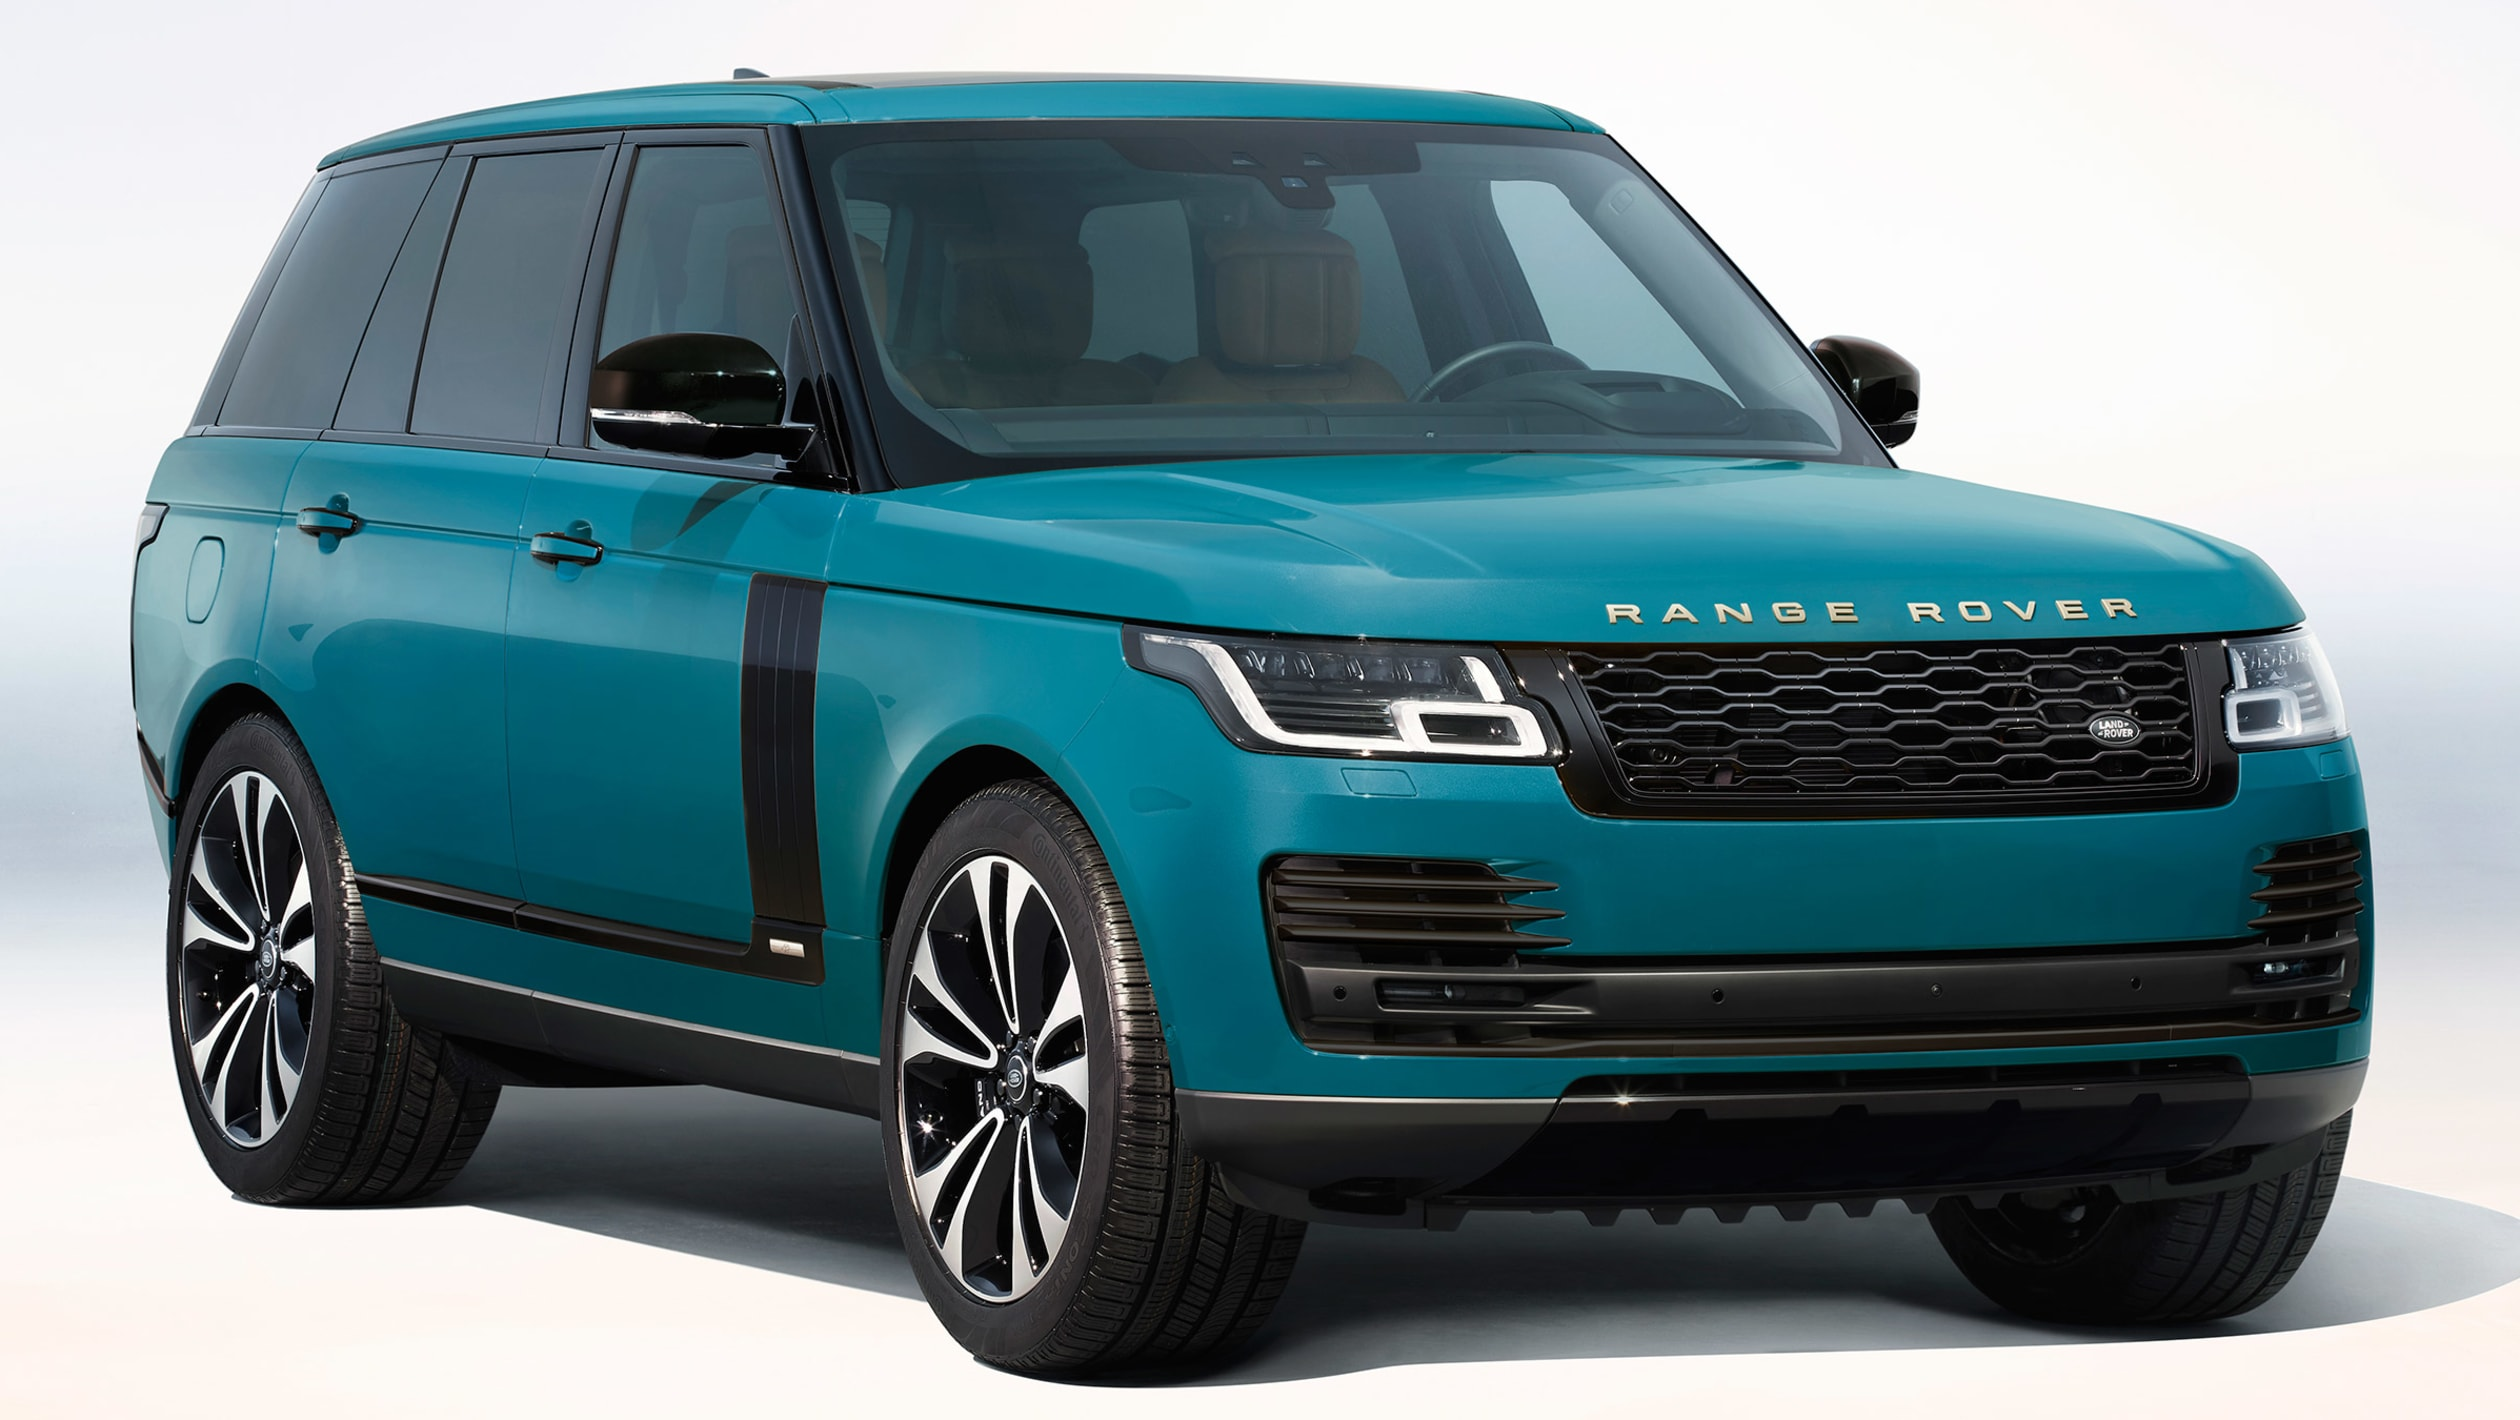 Range Rover Autobiography >> 2021 Range Rover Fifty Special Edition Limited to 1,970 ...